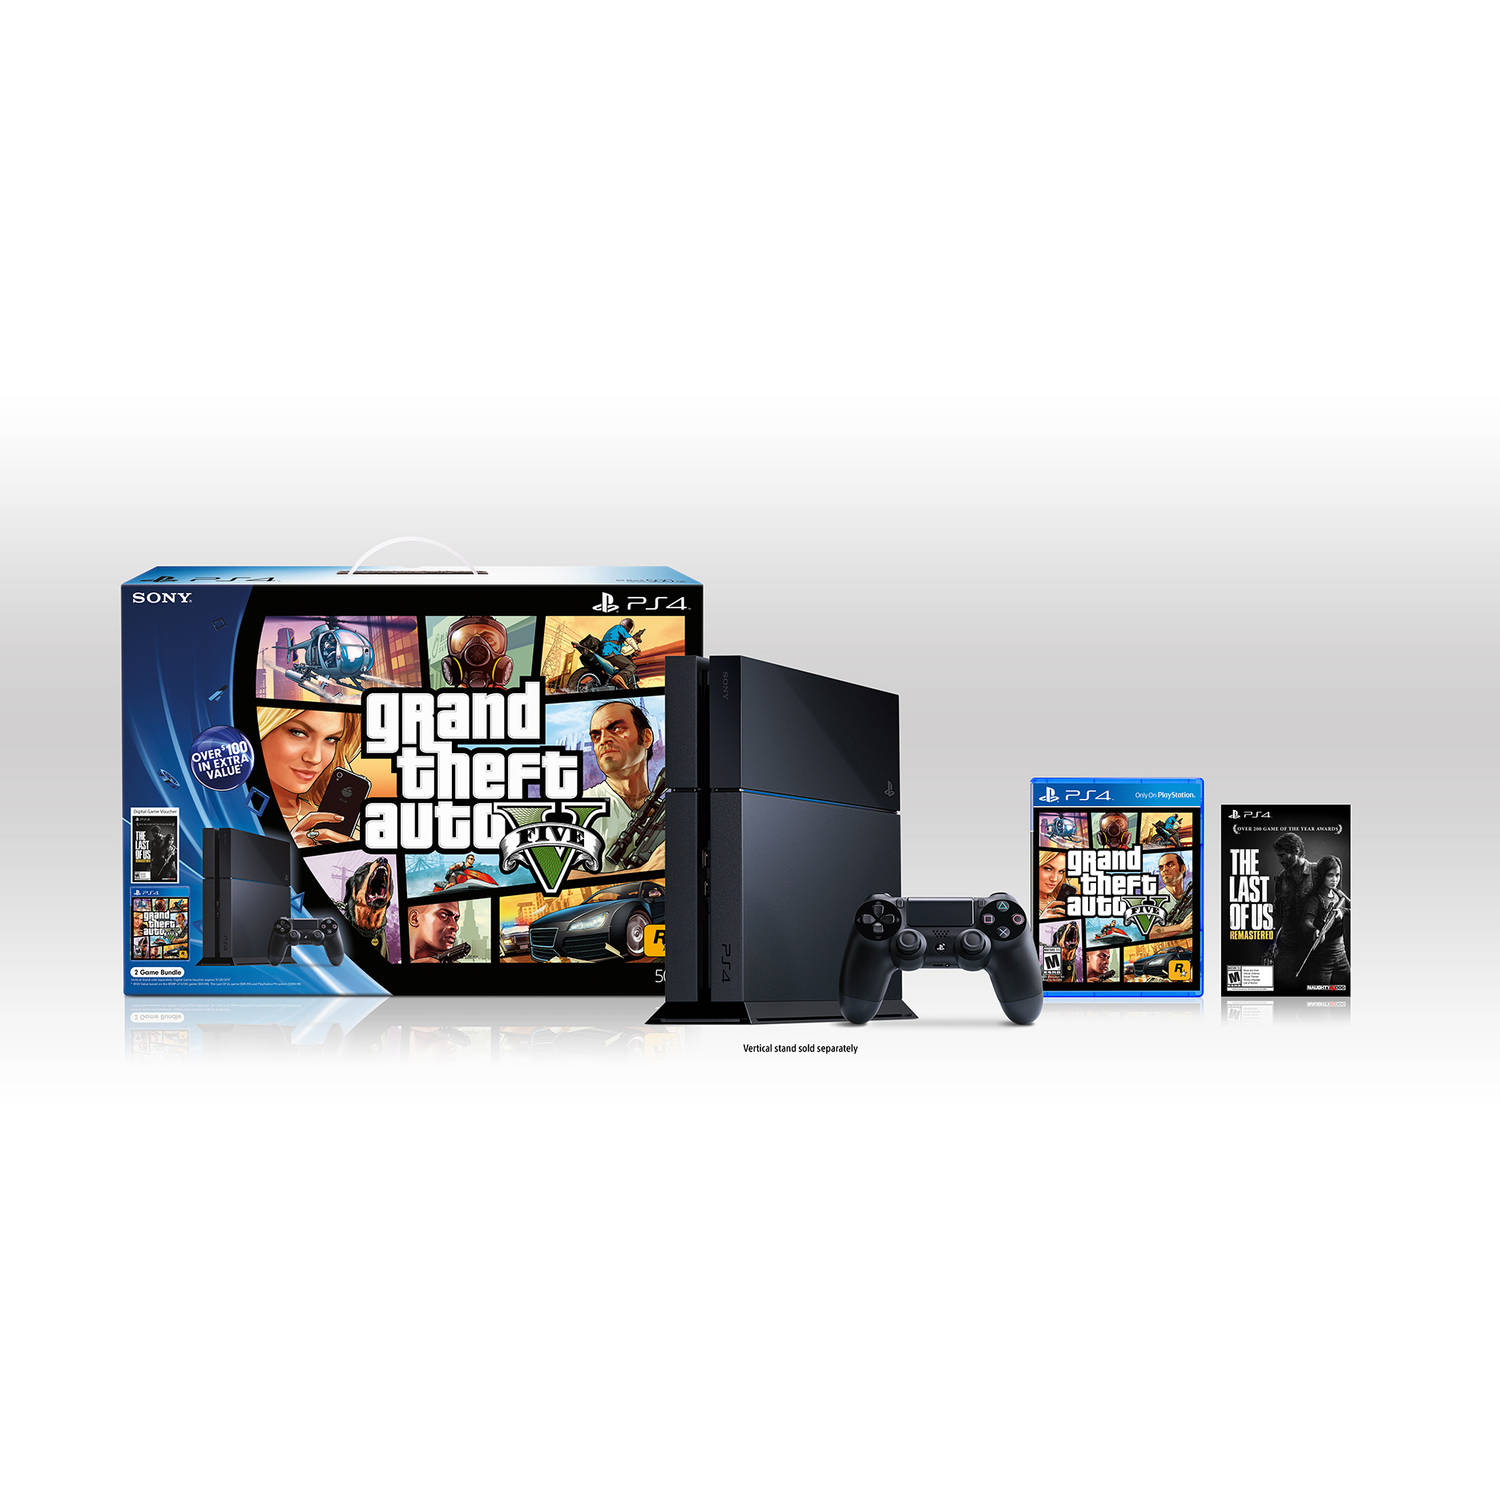 Sony PlayStation 4 Black Friday Bundle - Grand Theft Auto...